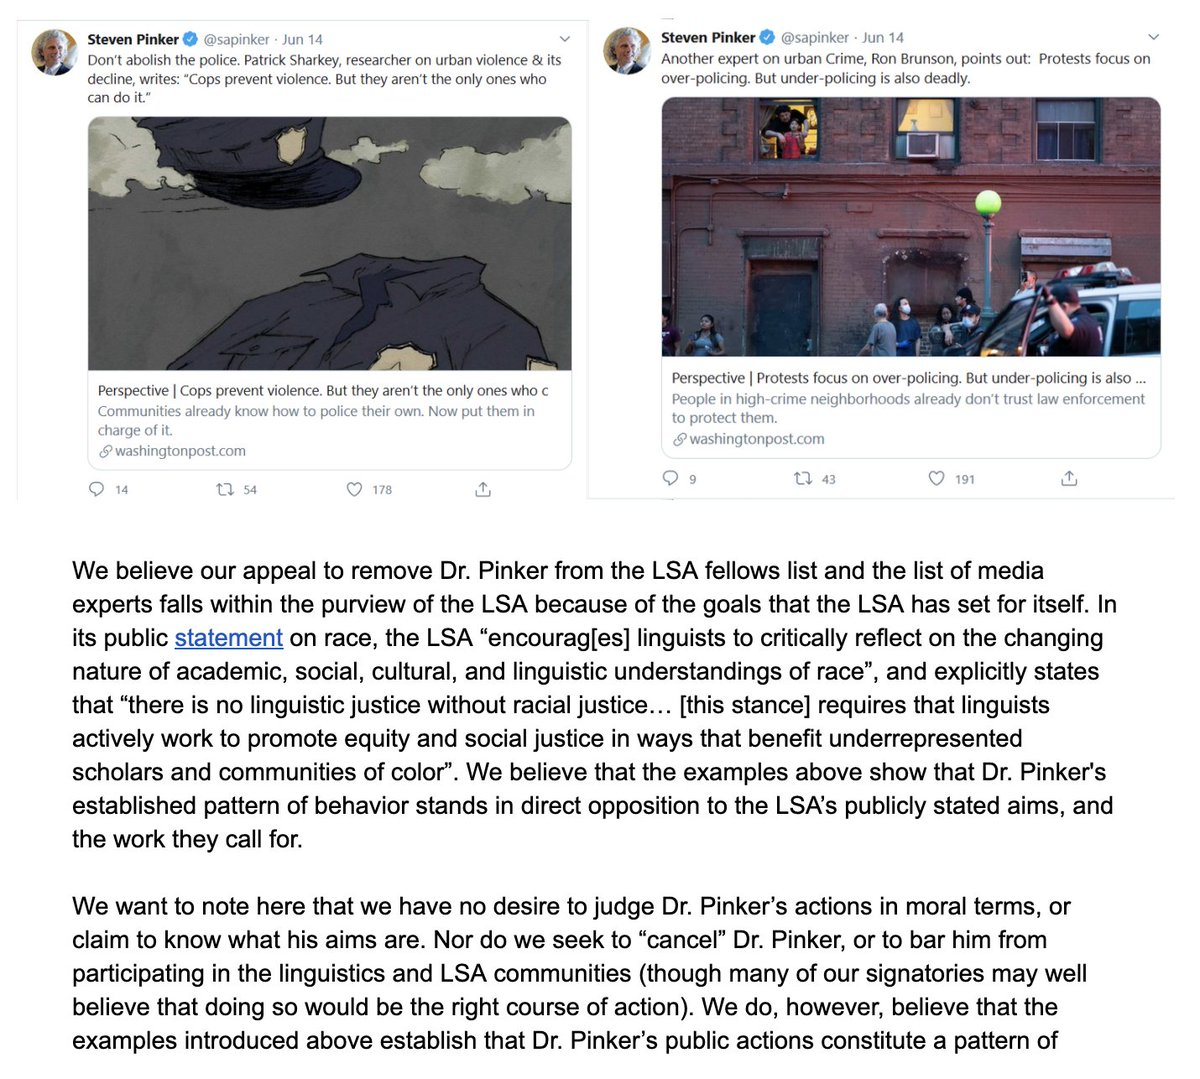 Pure lunacy: Liberals continue devouring their own, purging fellow liberals like @sapinker who do not perfectly align with woke standards (established last Tuesday), scraping social media for any violations. Time to cancel the LSA.  https://t.co/jGVhAV6iqZ https://t.co/SwcC1Vx1fb